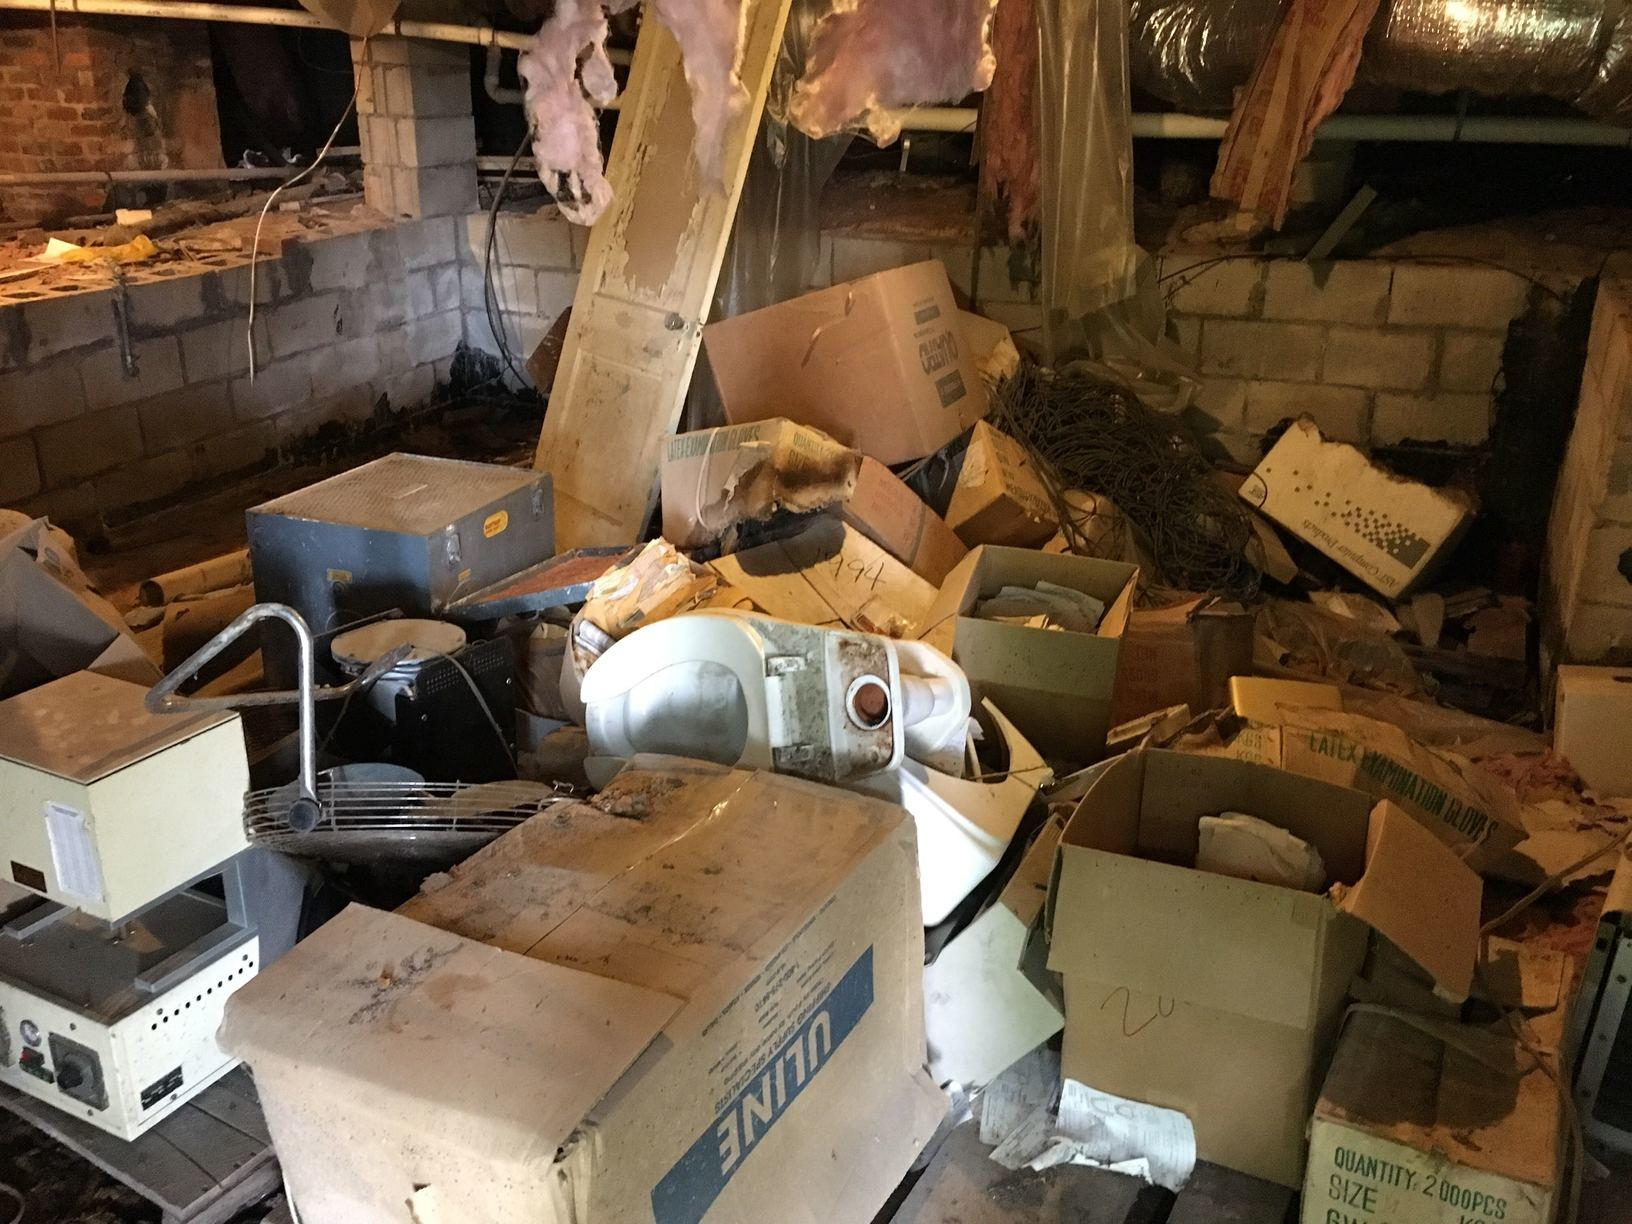 Crawl Space Clean Out in Charlotte, NC - Before Photo